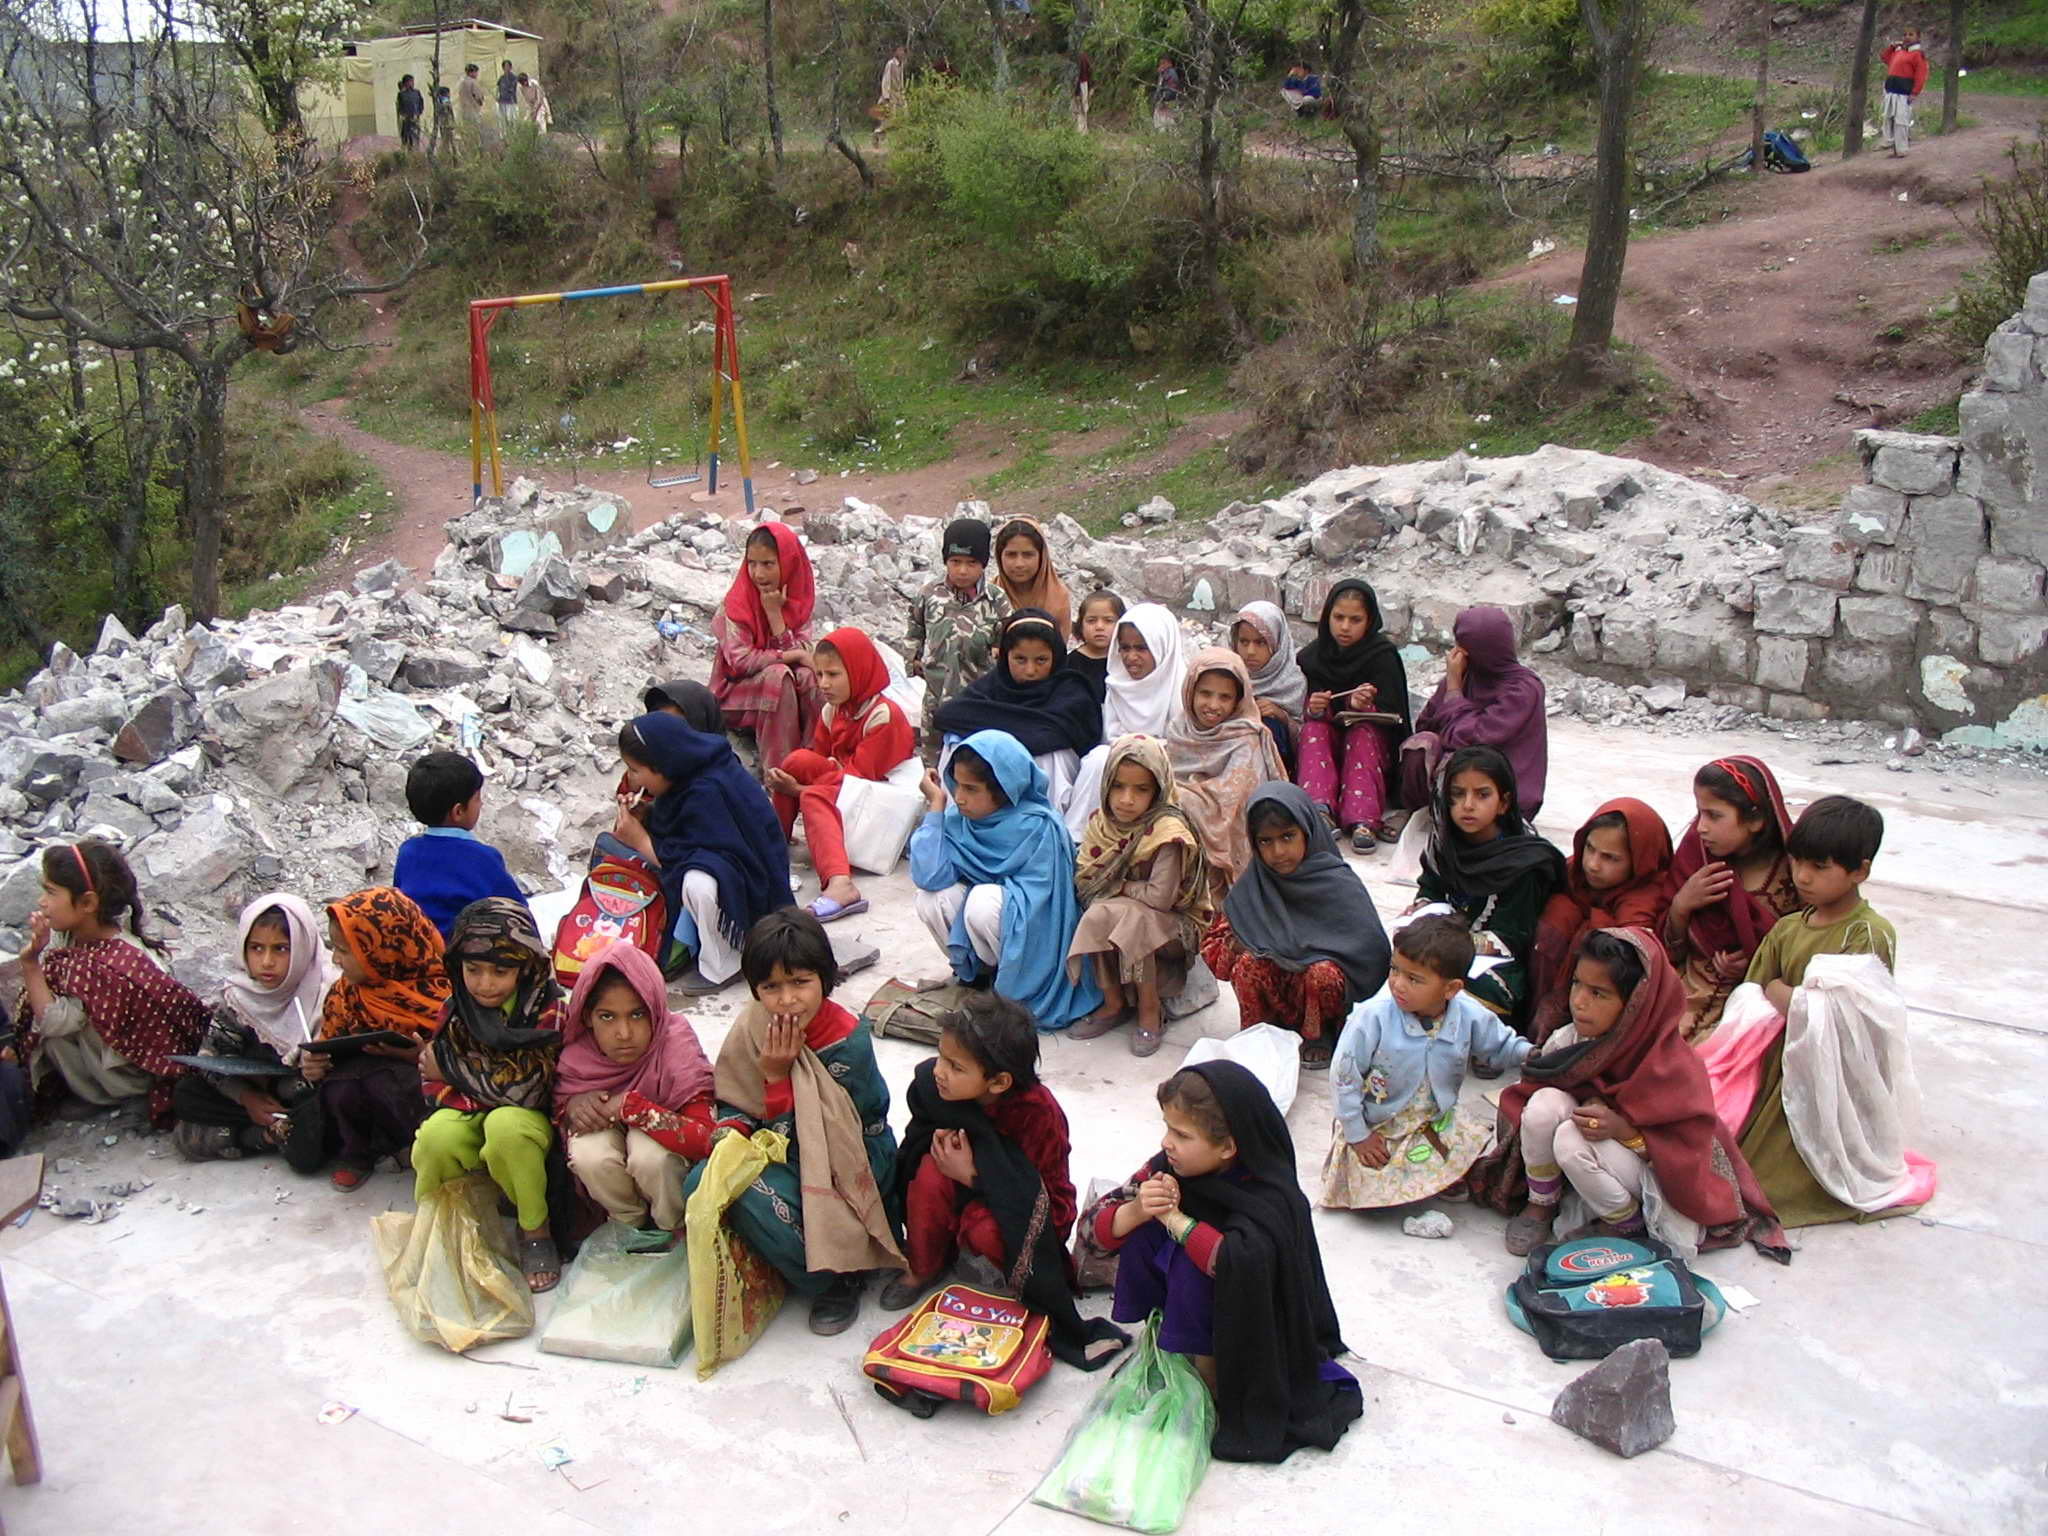 Photo: Unknown, Children of Kashmir, Conflict and A Collapsed Education System | Leher NGO in India | Child Rights Organization